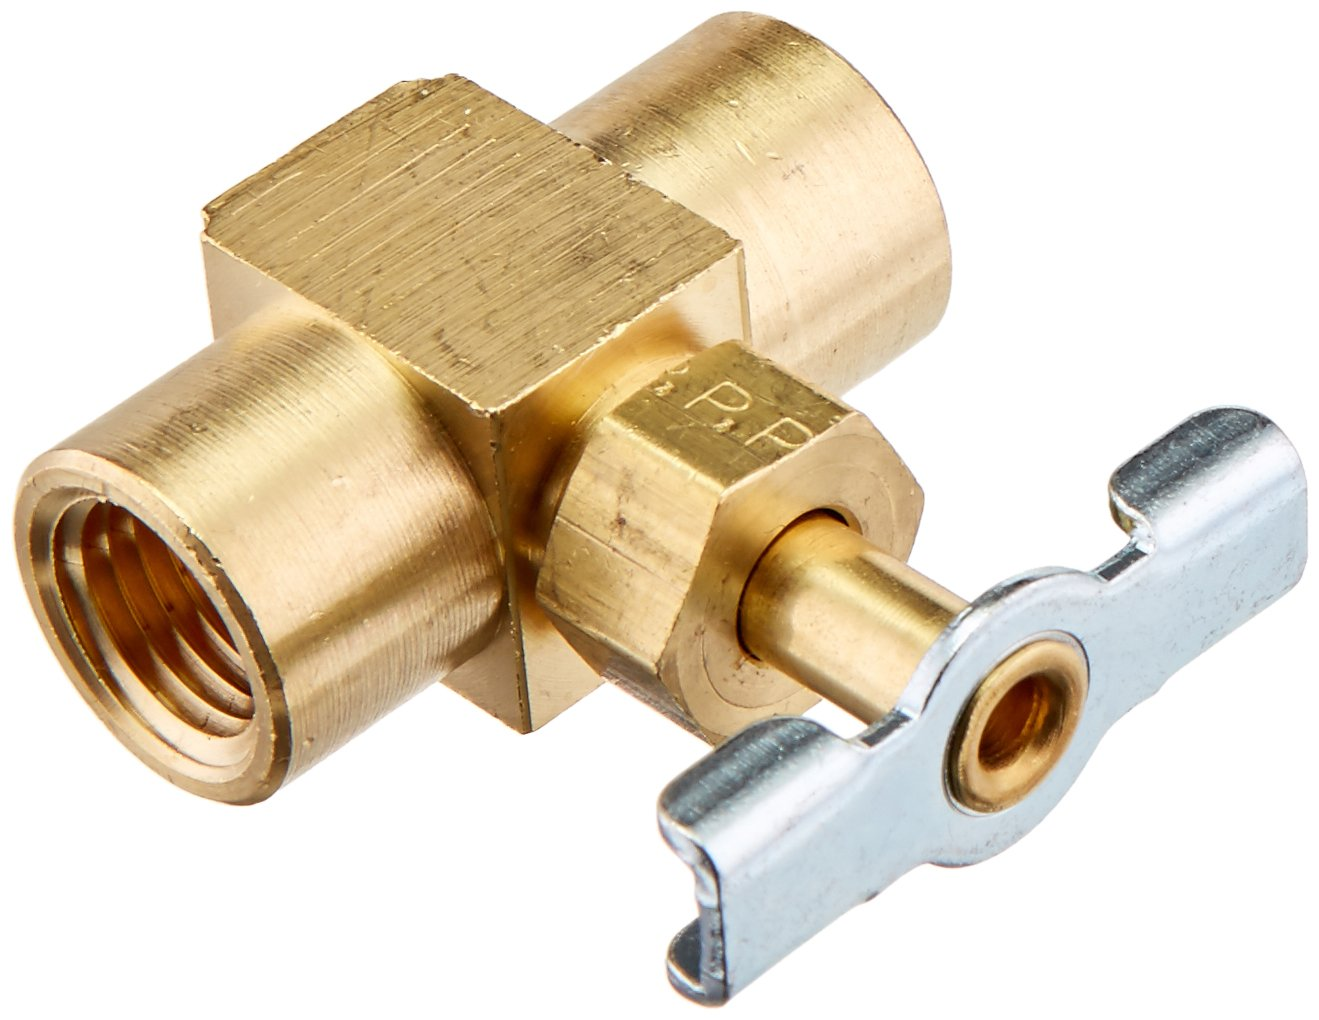 Parker Hannifin NV109P-4 Series NV109 Brass Needle Valve 1//4 Female Pipe x 1//4 Male Pipe